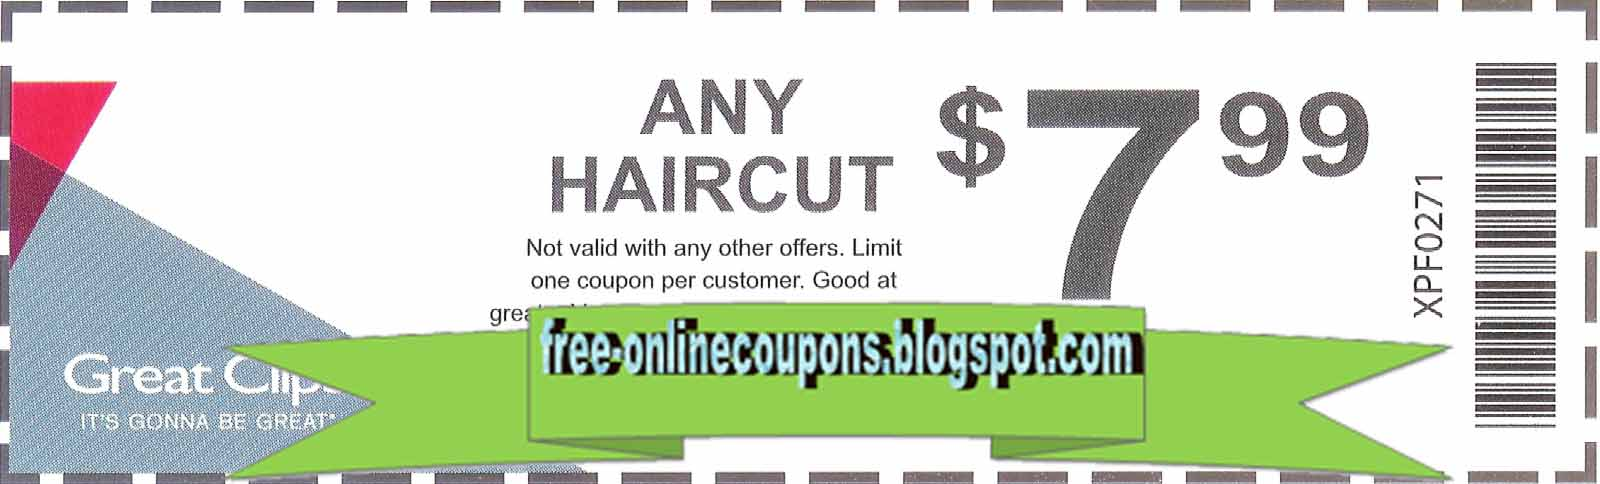 Printable Coupons 2018 Great Clips Coupons